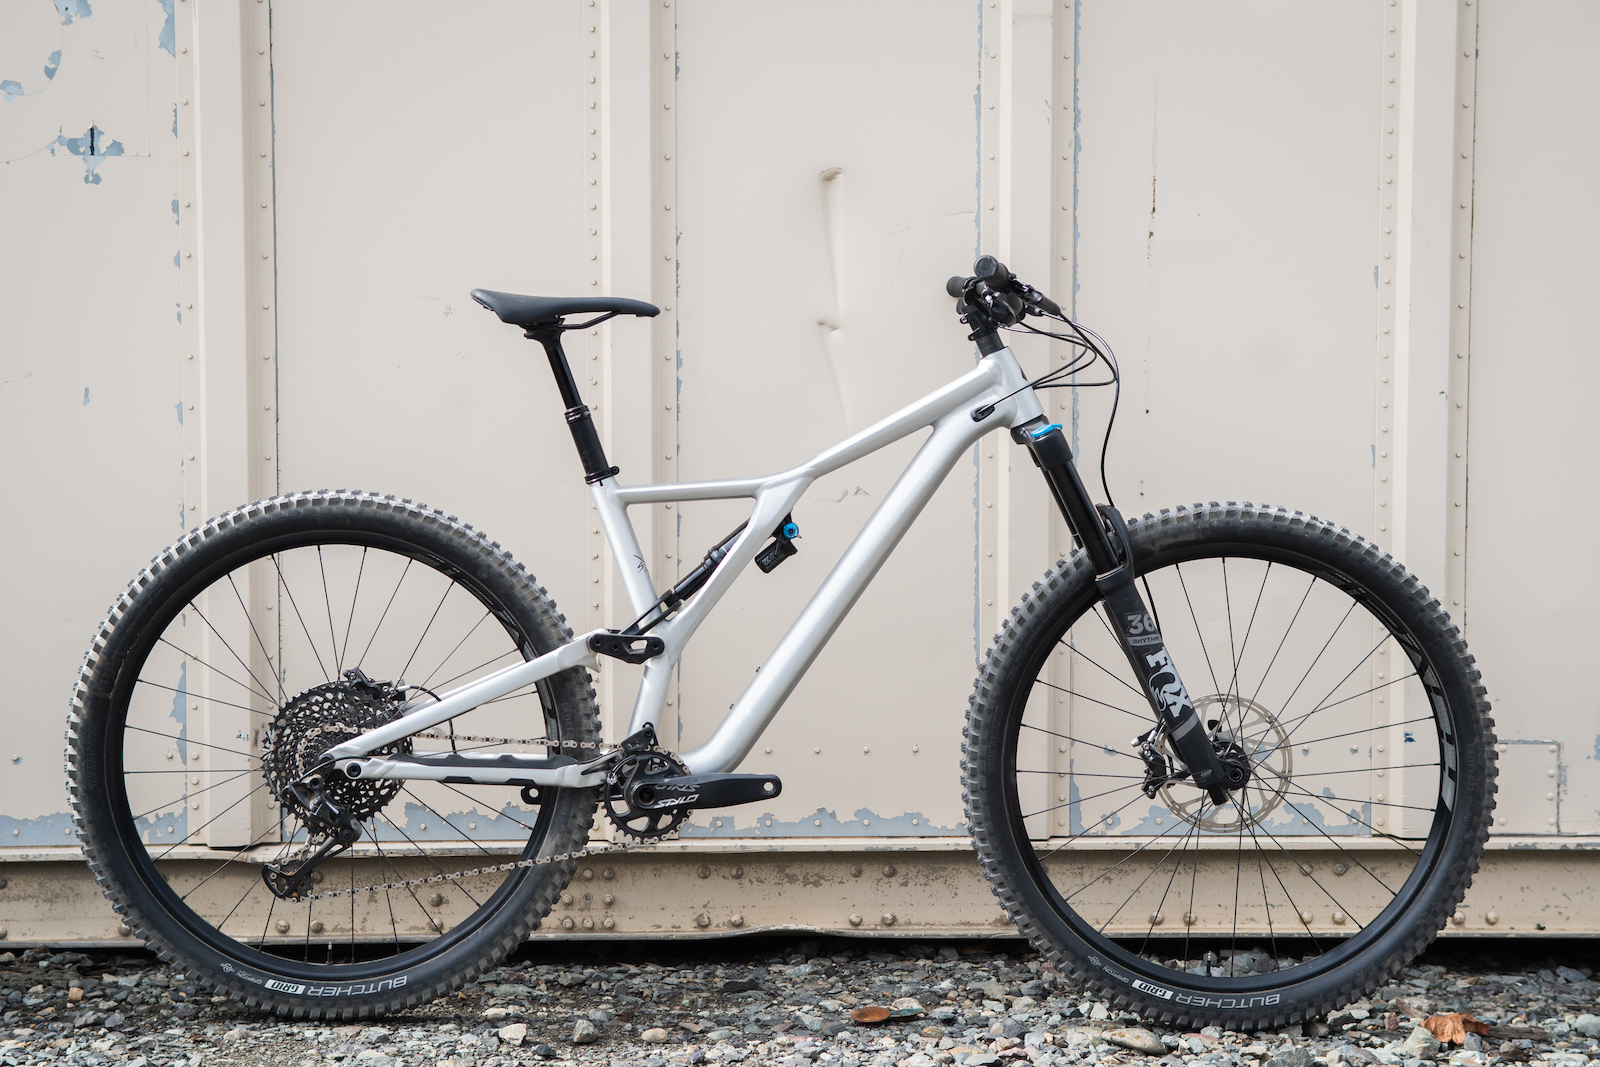 Review: Specialized Stumpjumper EVO 29 - Pinkbike